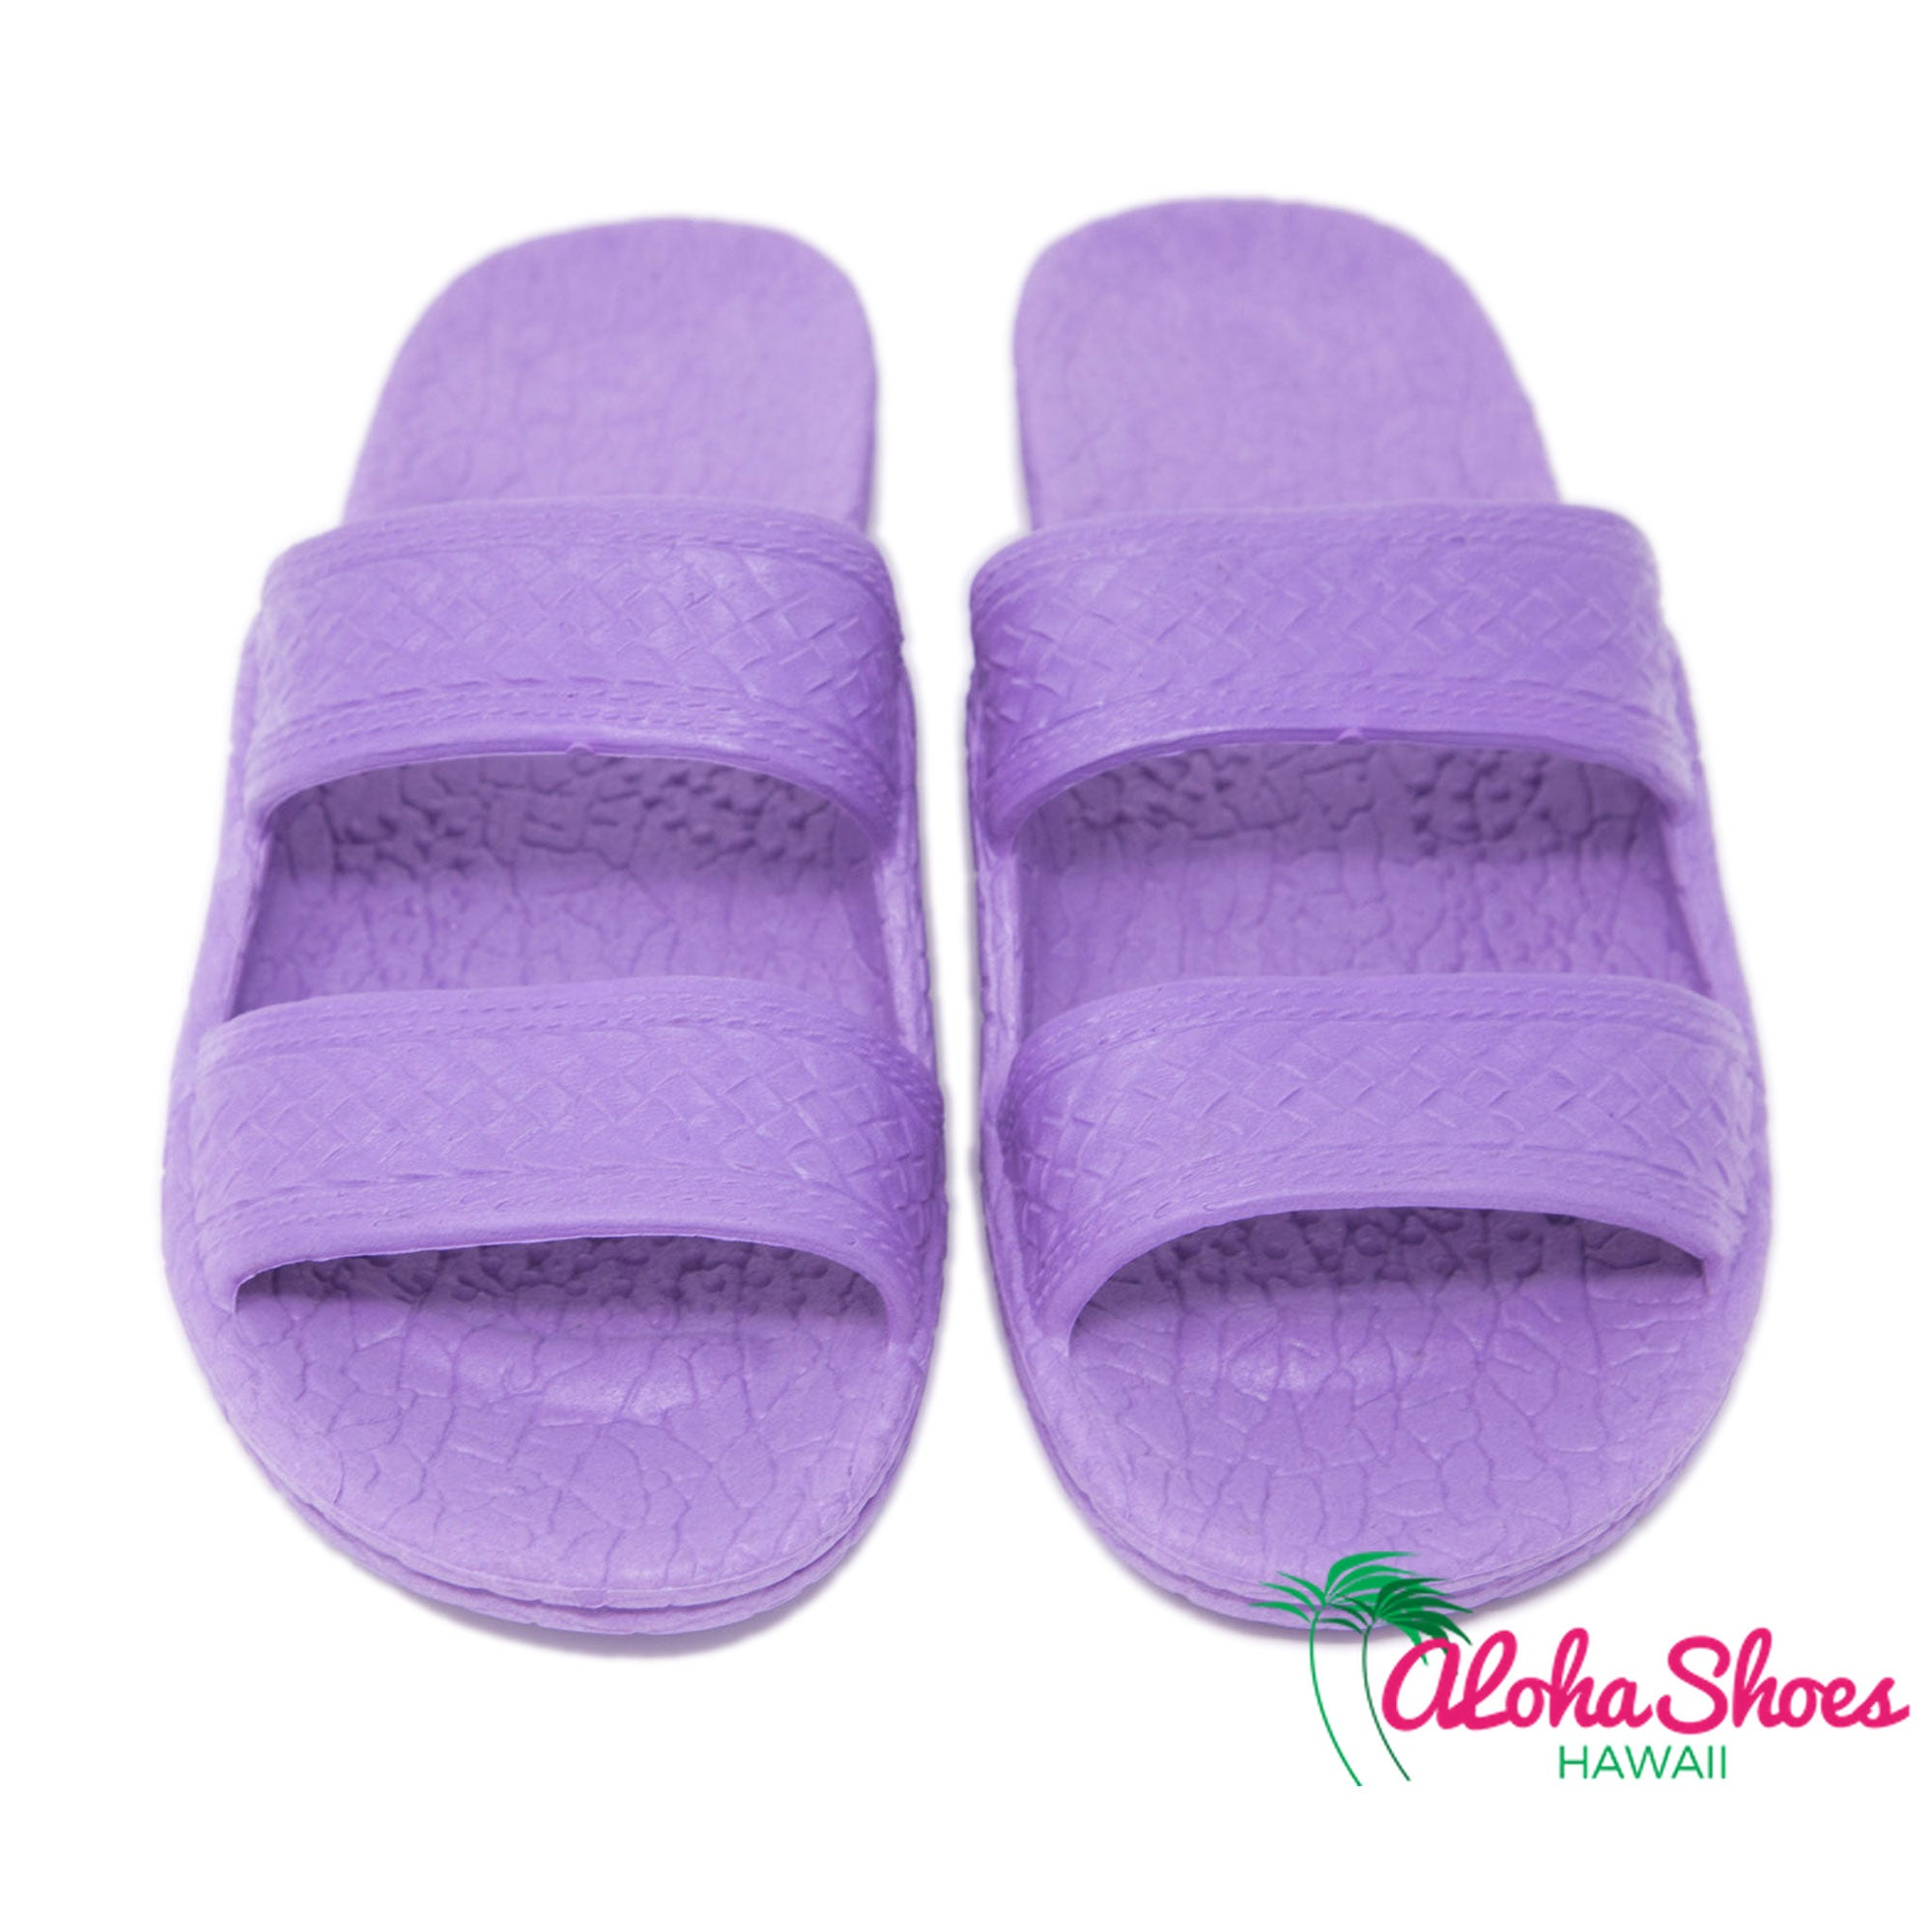 56650677e4ec Jandals Hawaiian Pali Hawaii Purple Sandals - AlohaShoes.com